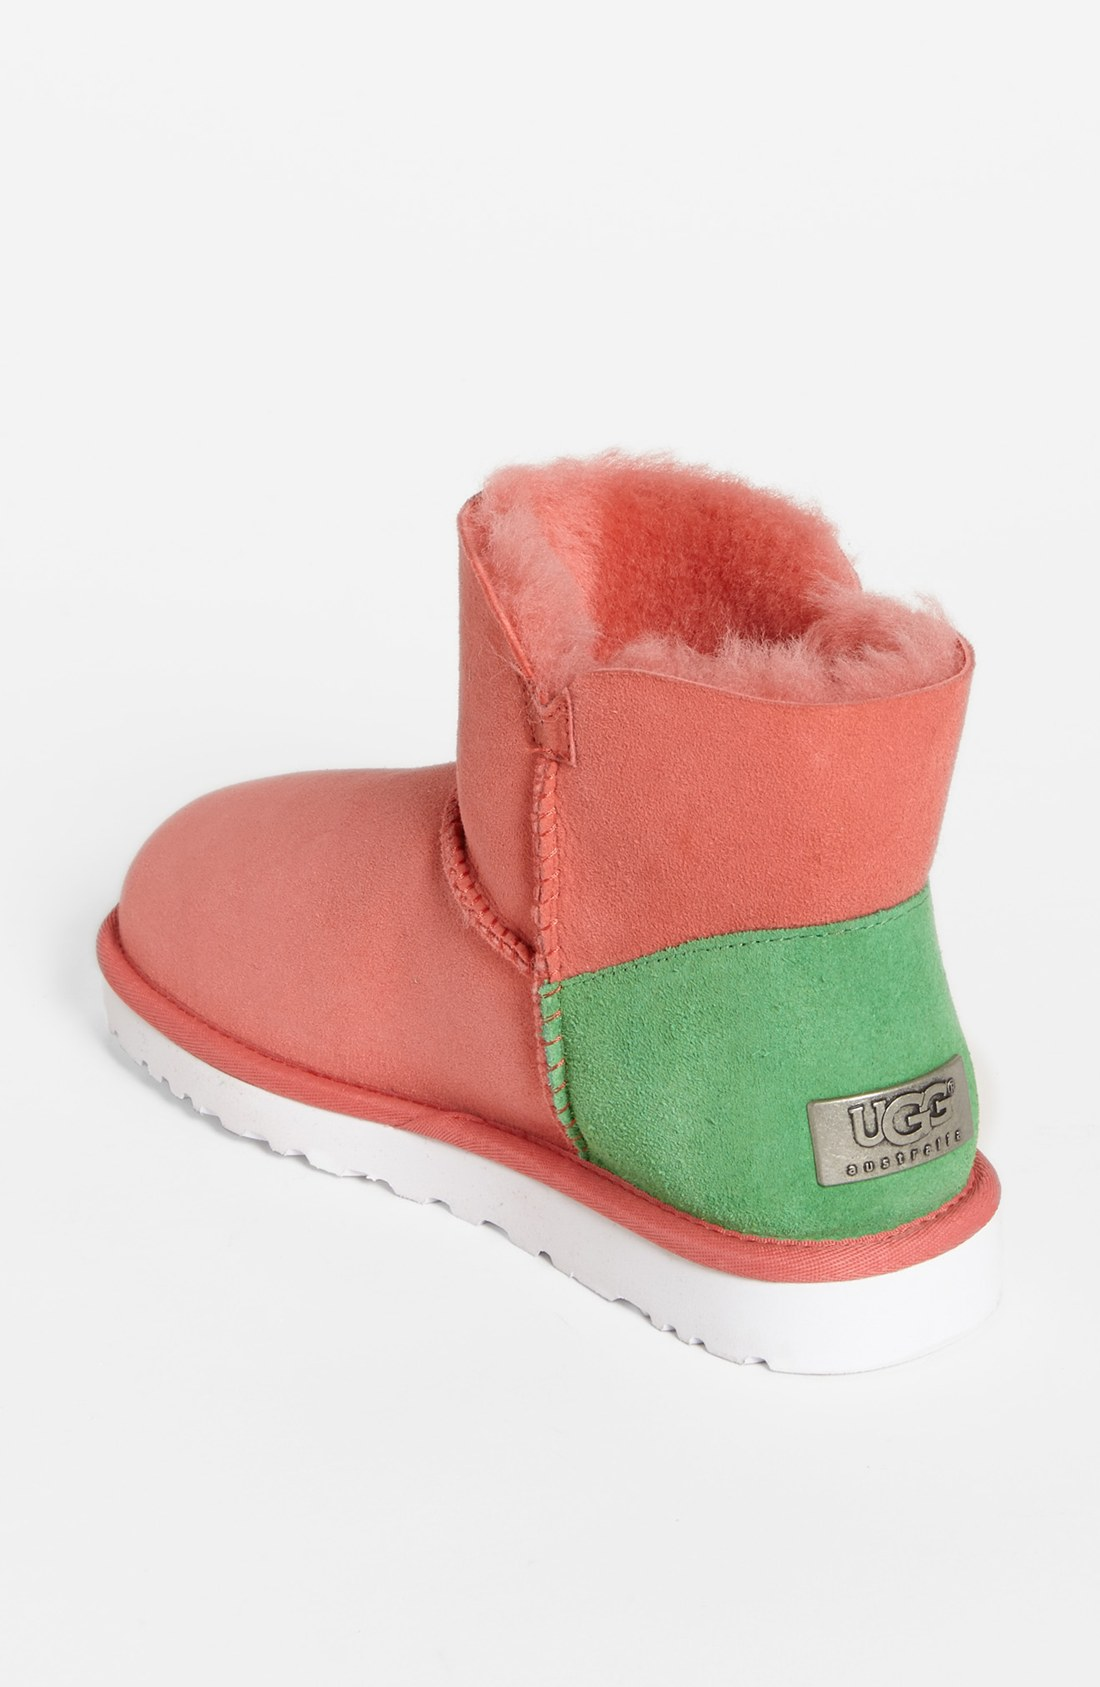 7f4df118b Baby Pink Toddler Ugg Boots | Kids Bling Bailey Bow Ugg Boots Free ...